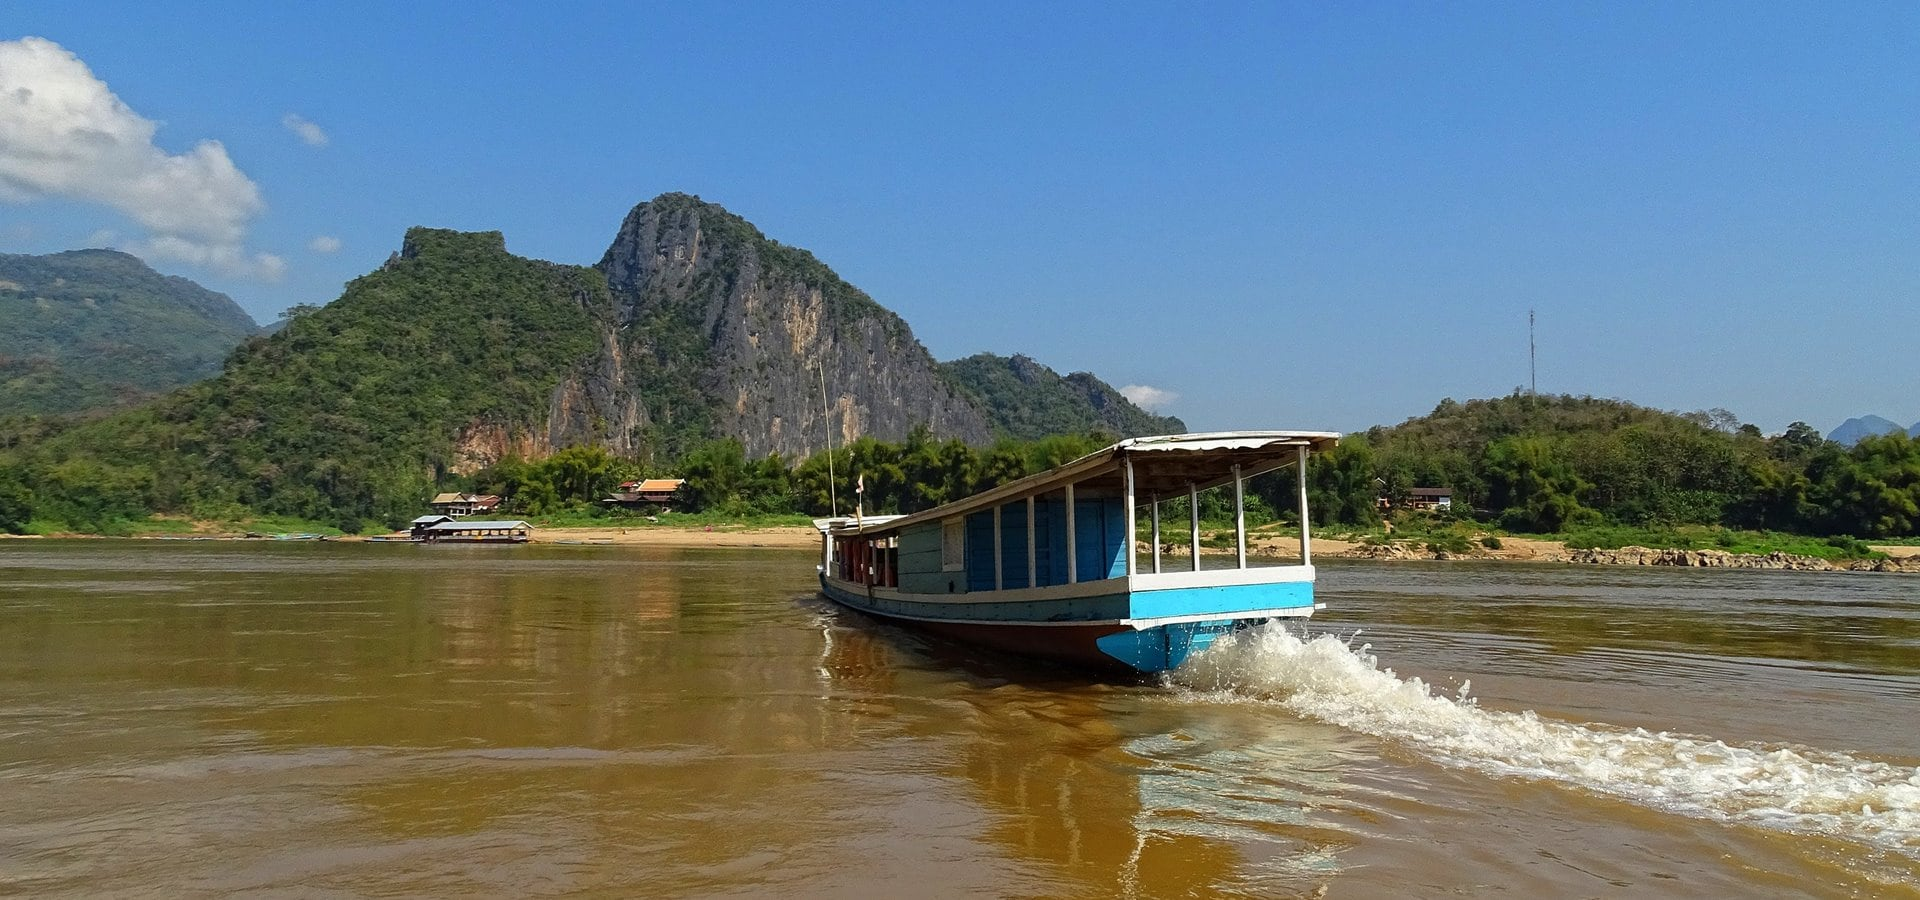 Along the mighty Mekong